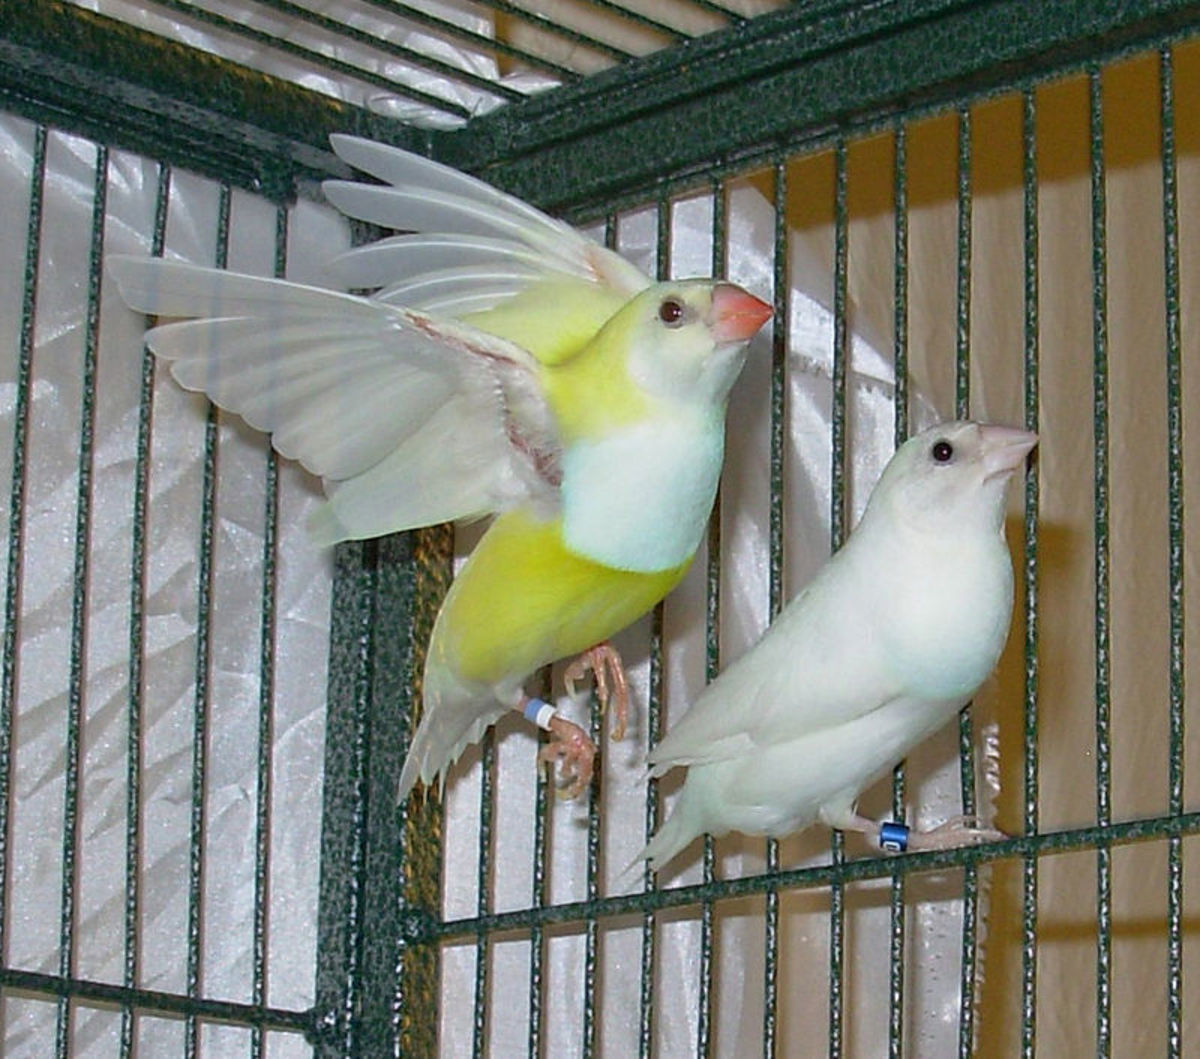 White Gouldian finch and yellow Gouldian finch mutation bred in captivity.